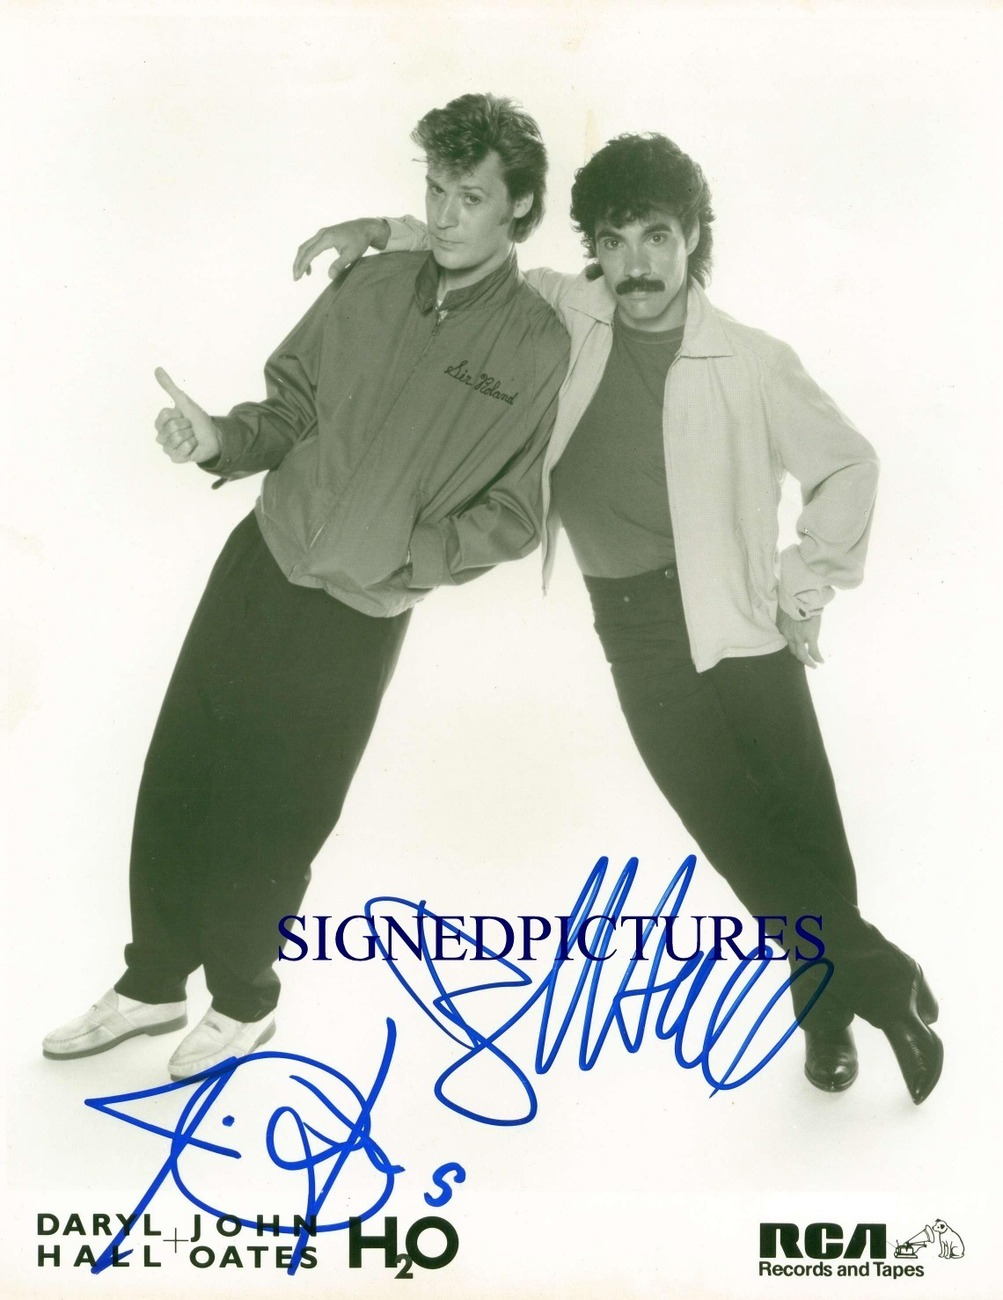 DARYL HALL AND JOHN OATES AUTOGRAPHED 8x10 RP PUBLICITY PROMO PHOTO